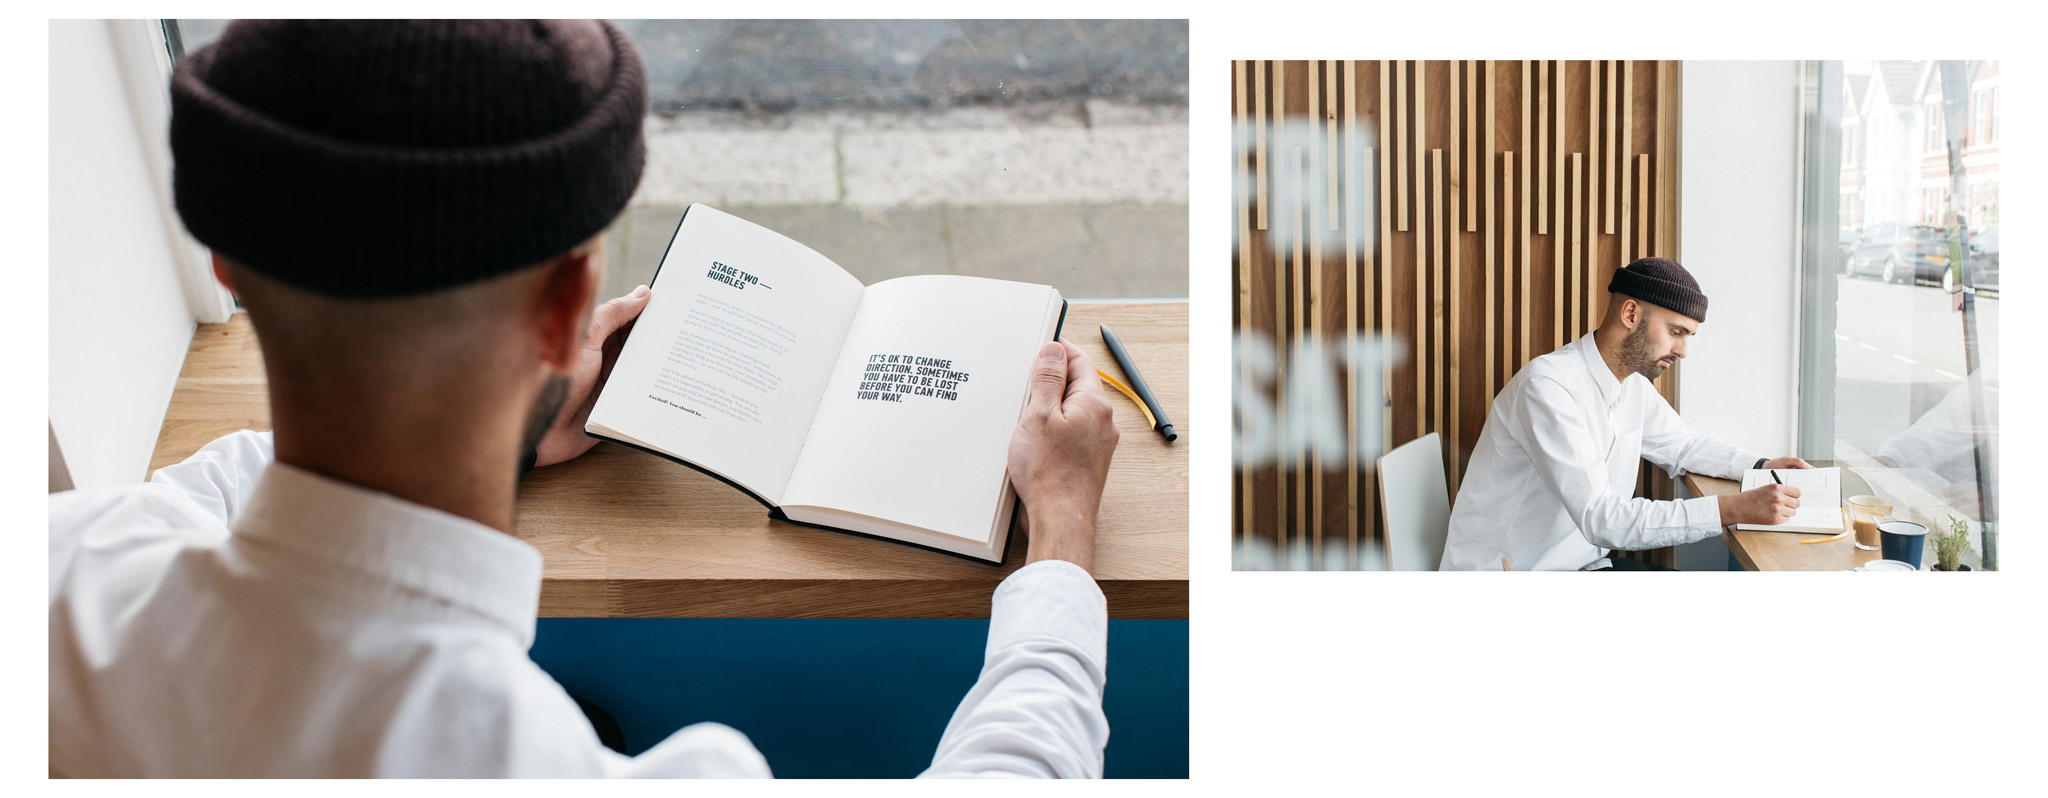 lifestyle and product photography for mens journal system Mind Journal